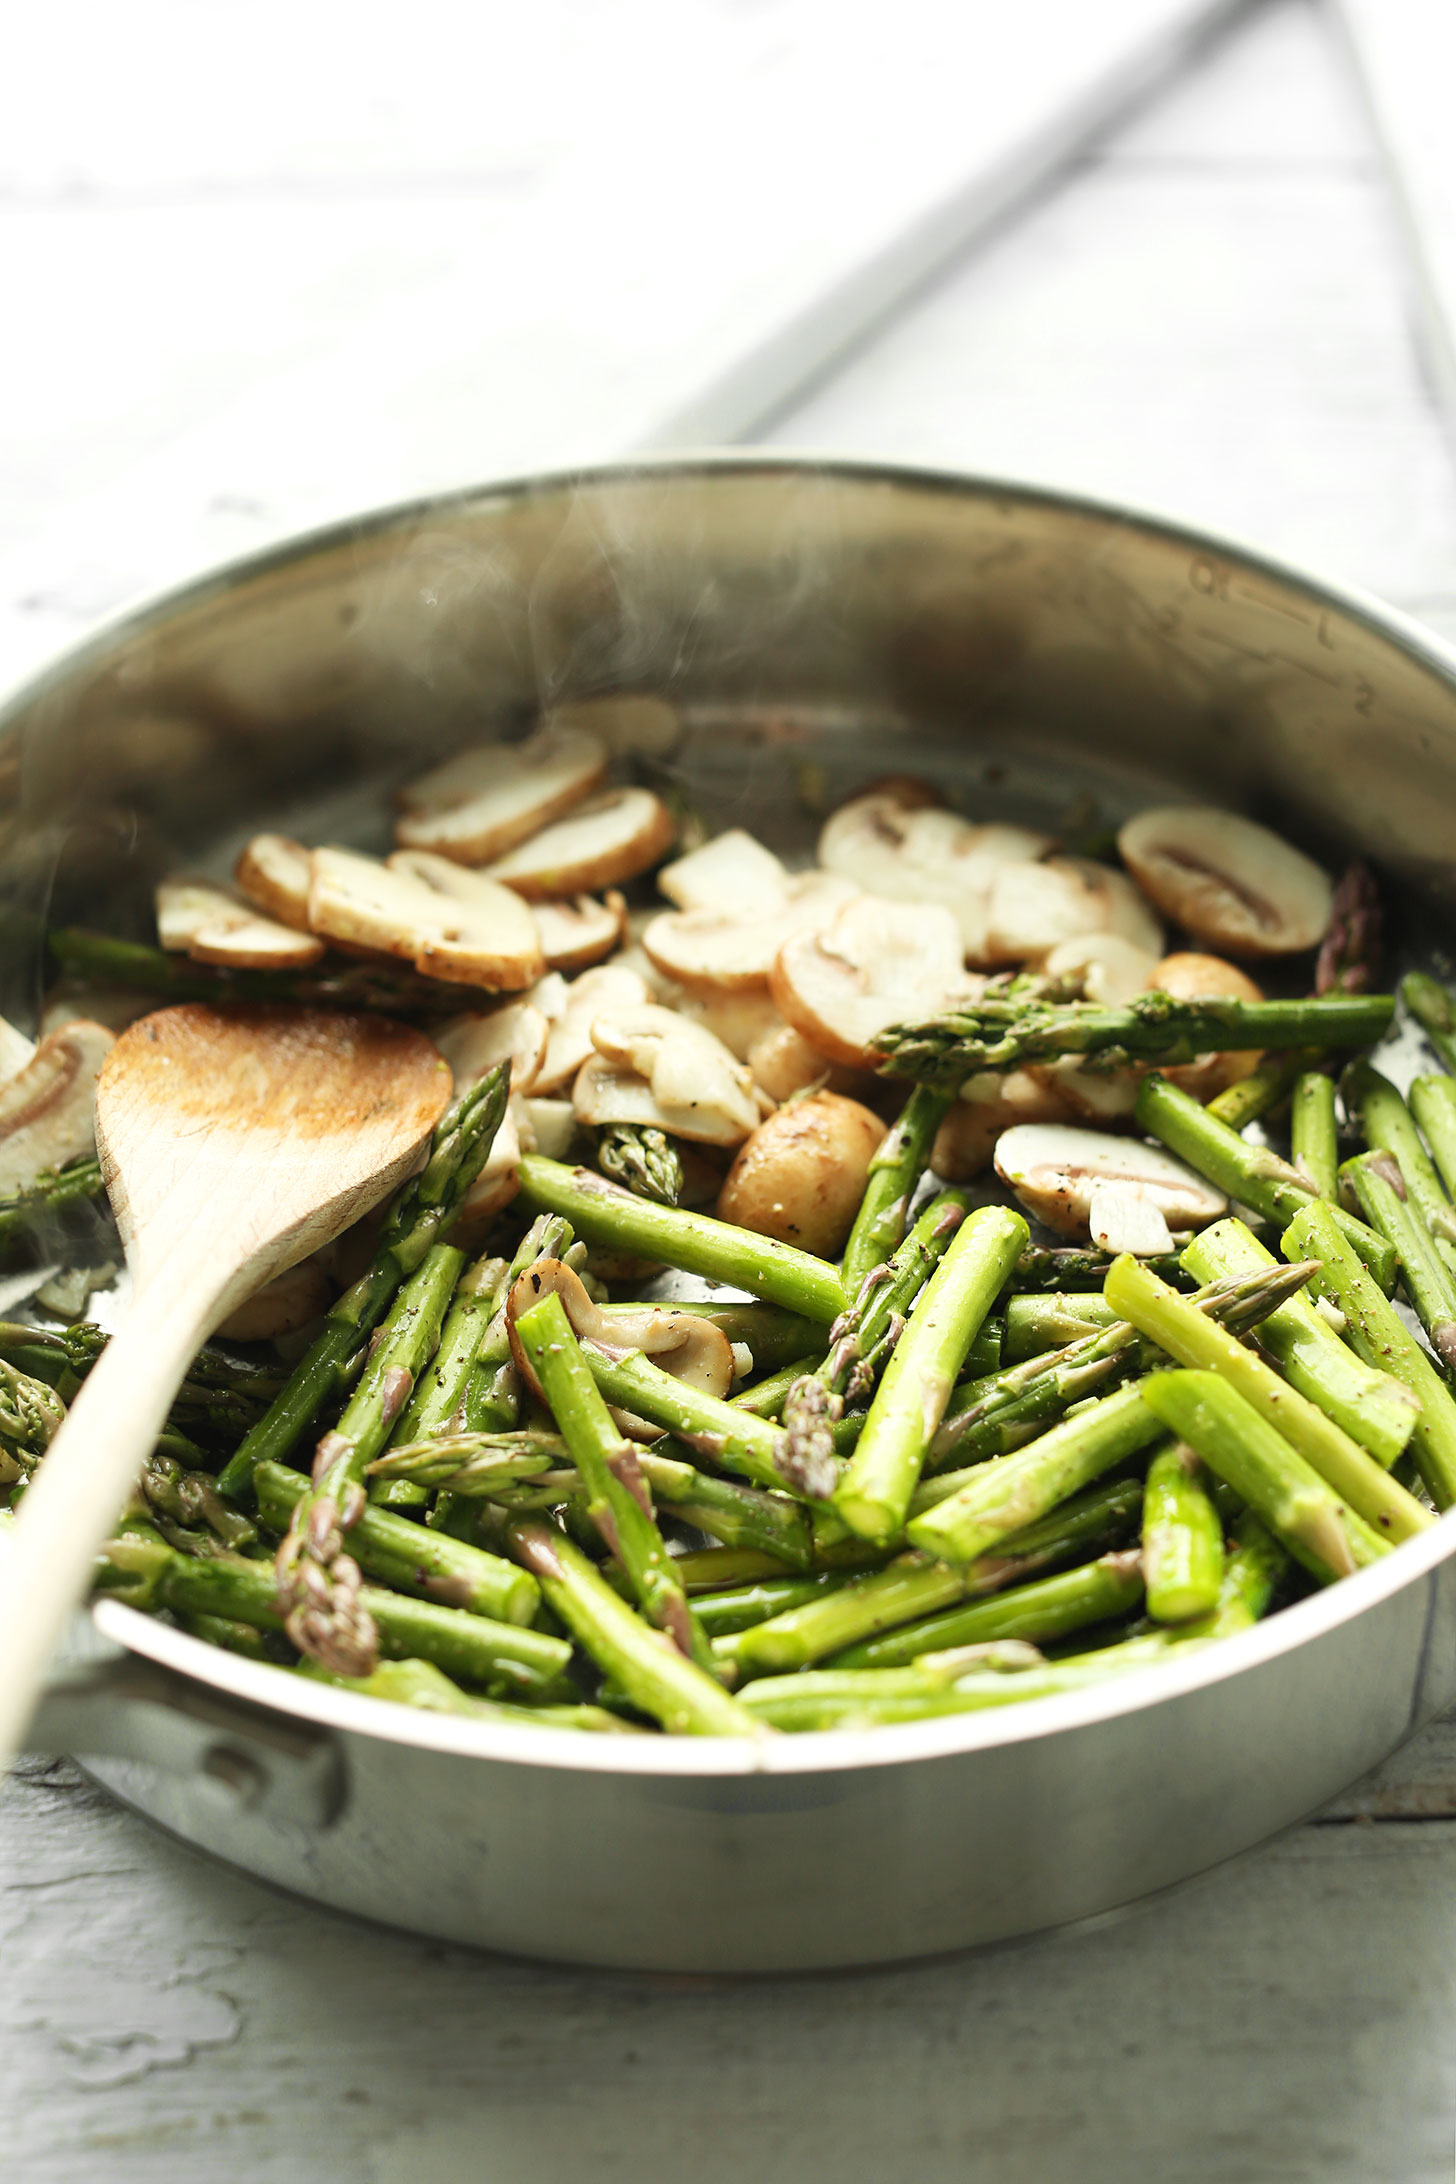 Sautéing mushrooms and asparagus for a simple plant-based meal